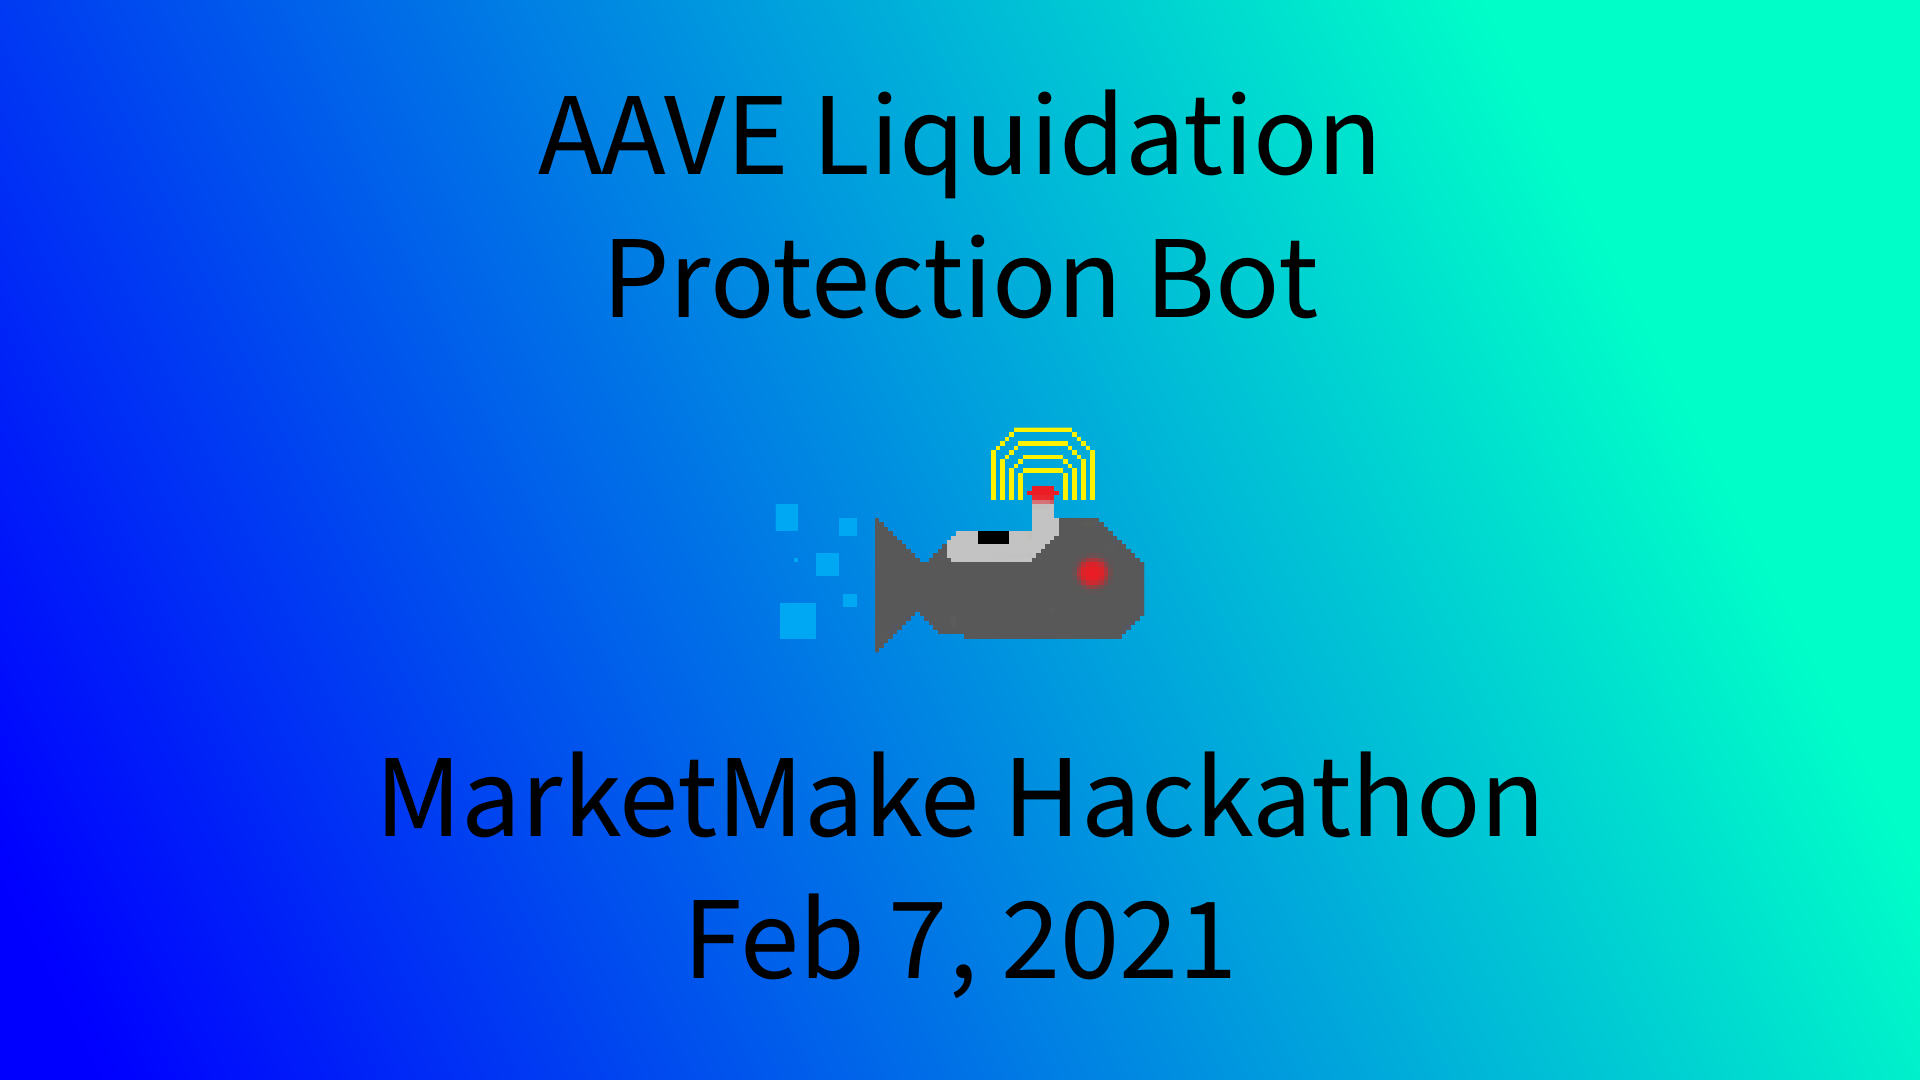 AAVE Liquidation Protection showcase